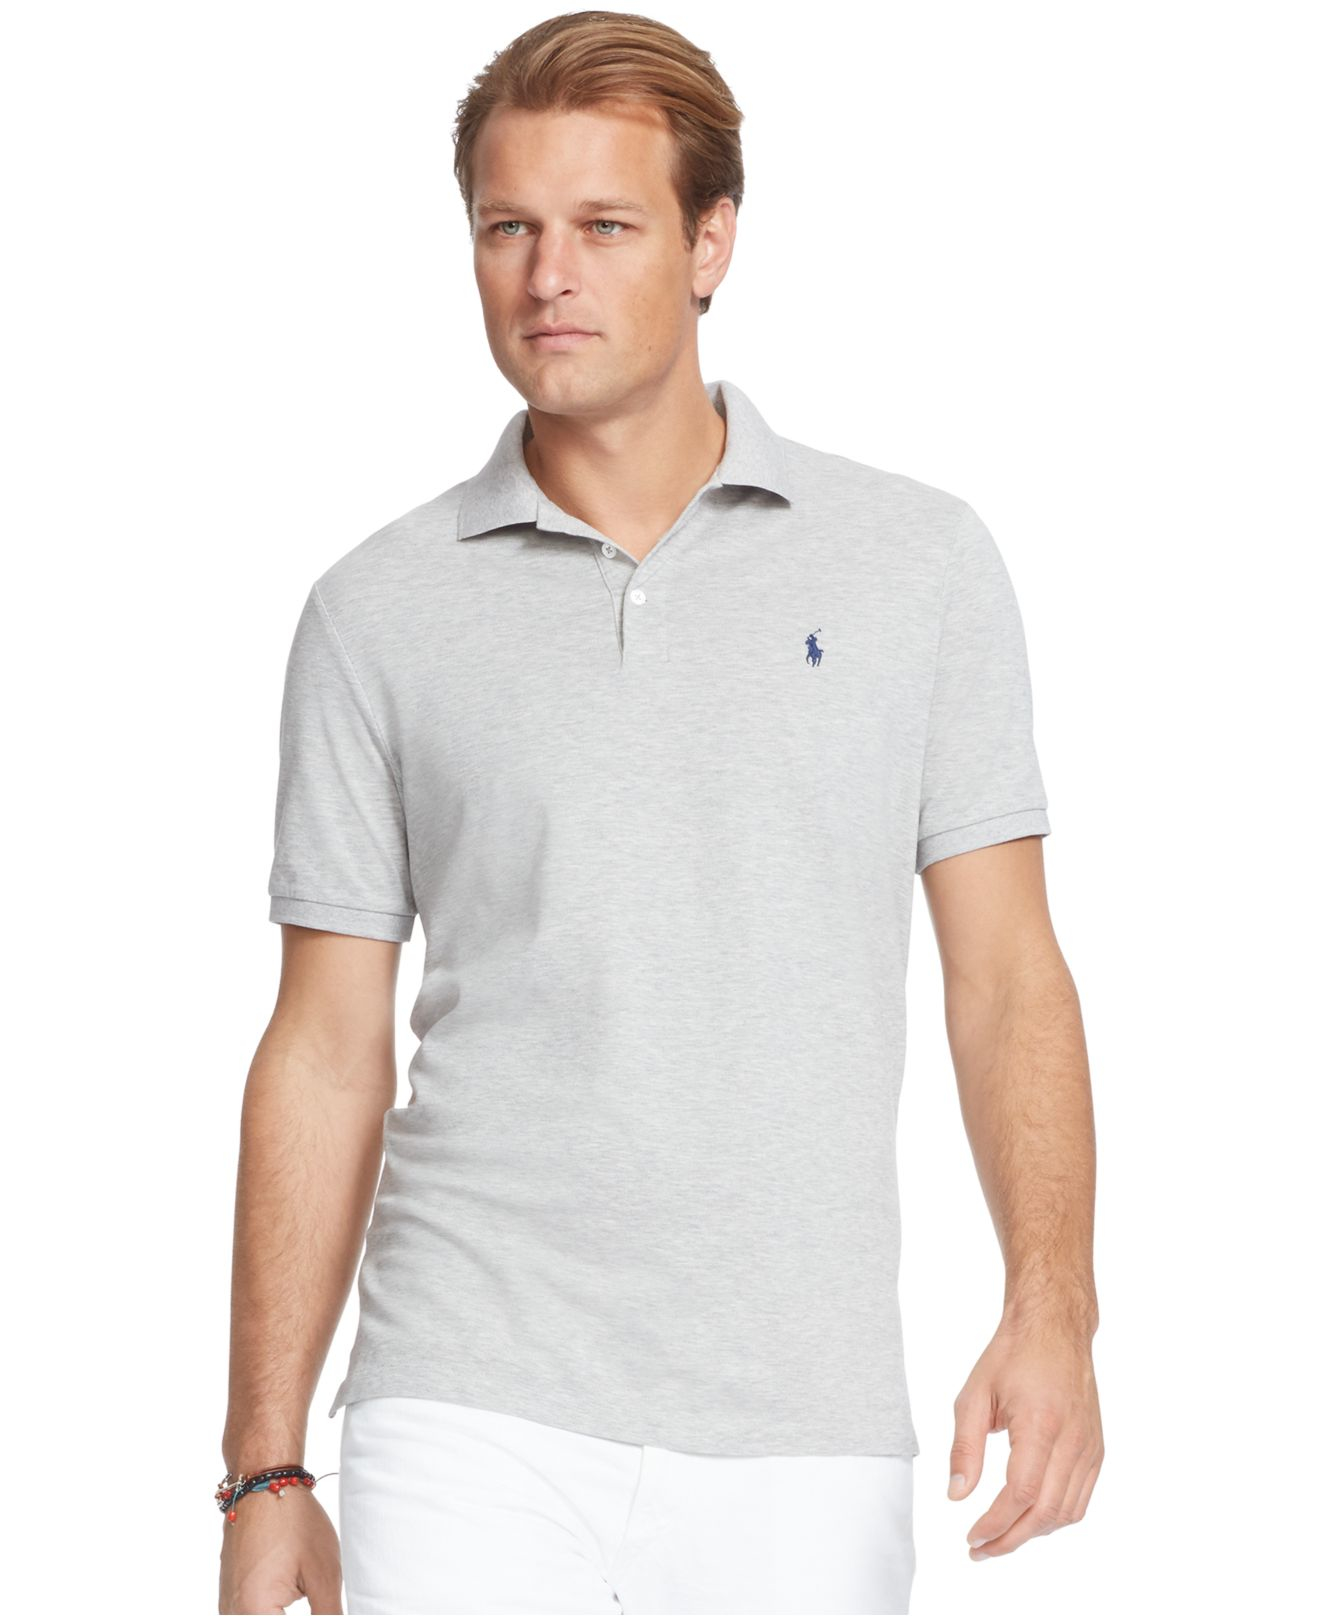 polo ralph lauren men 39 s big and tall classic fit mesh polo